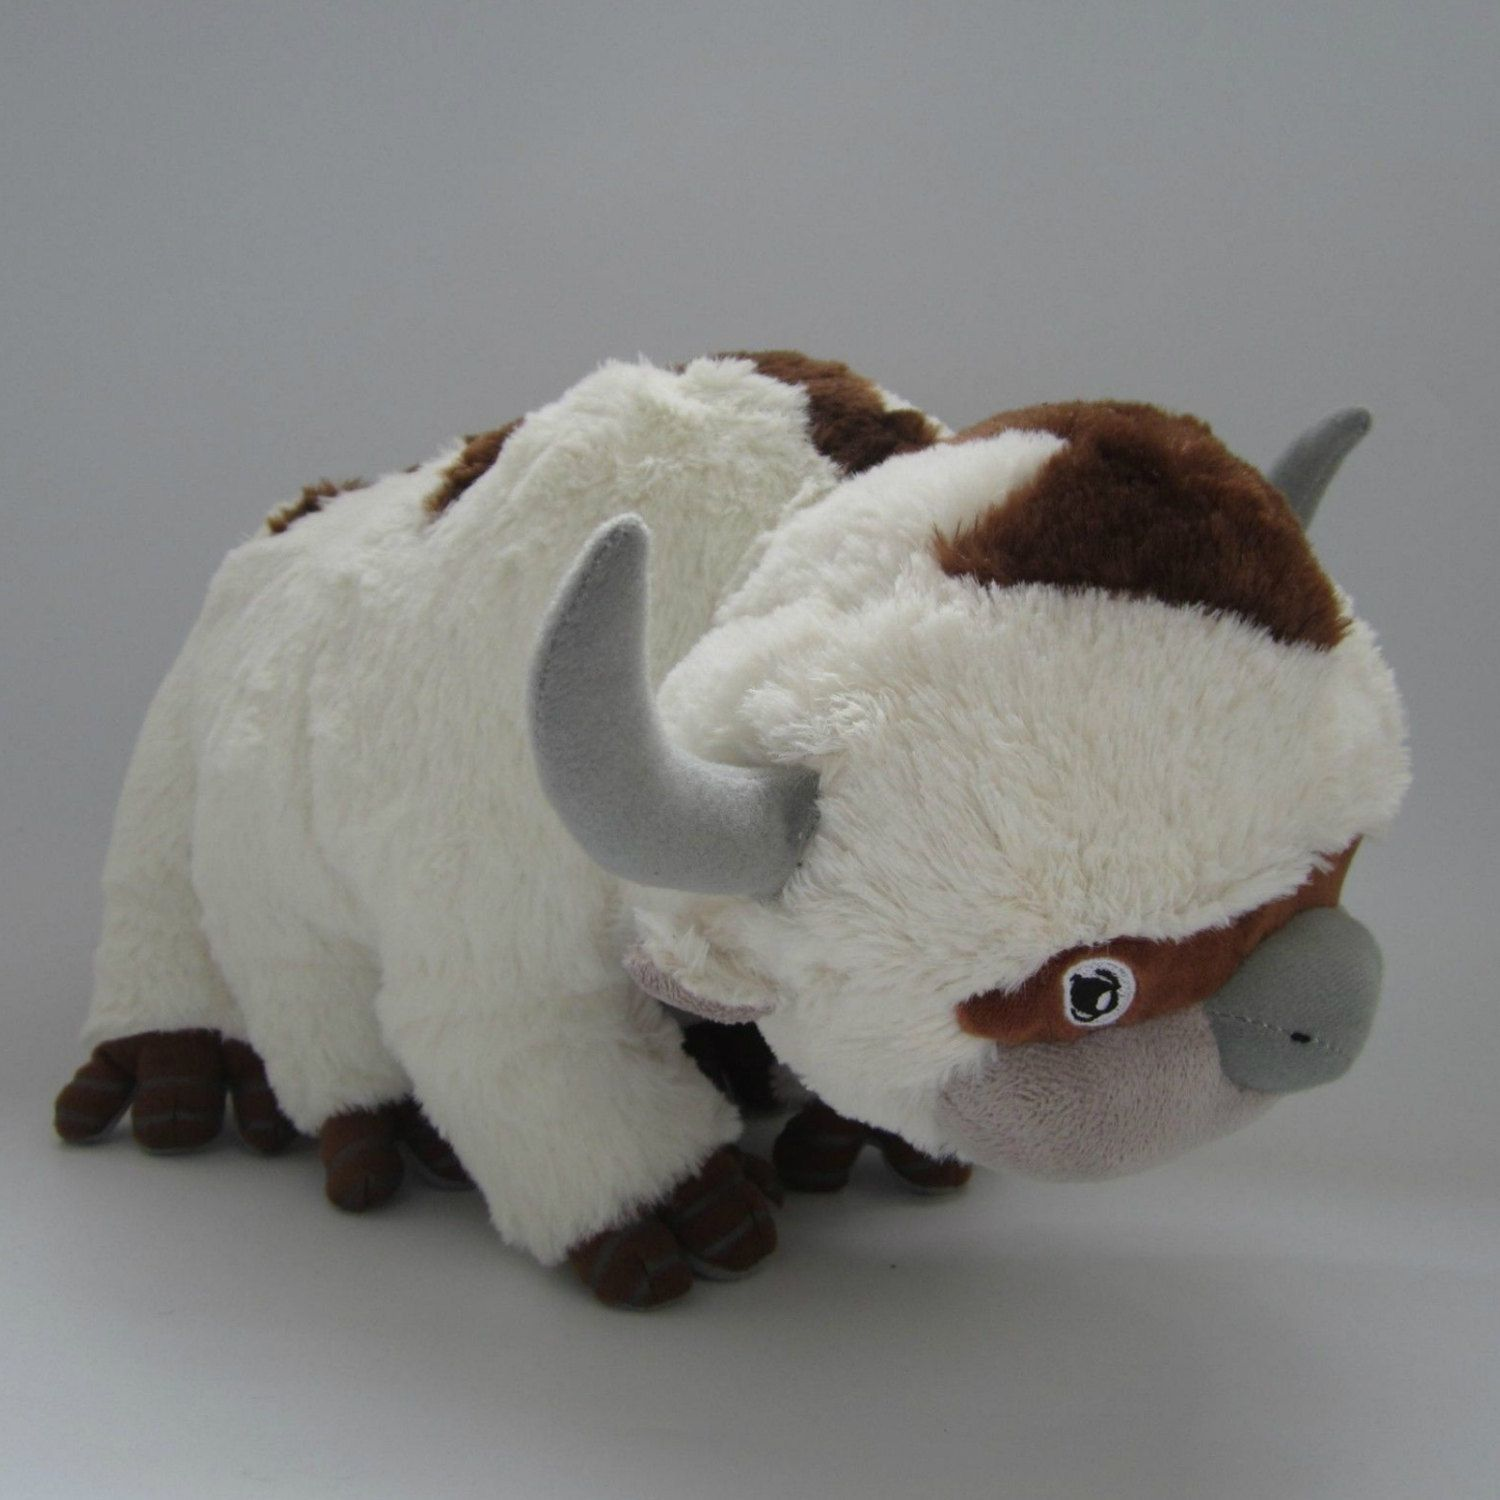 Avatar Appa The Last Airbender Plush Toy Flying by